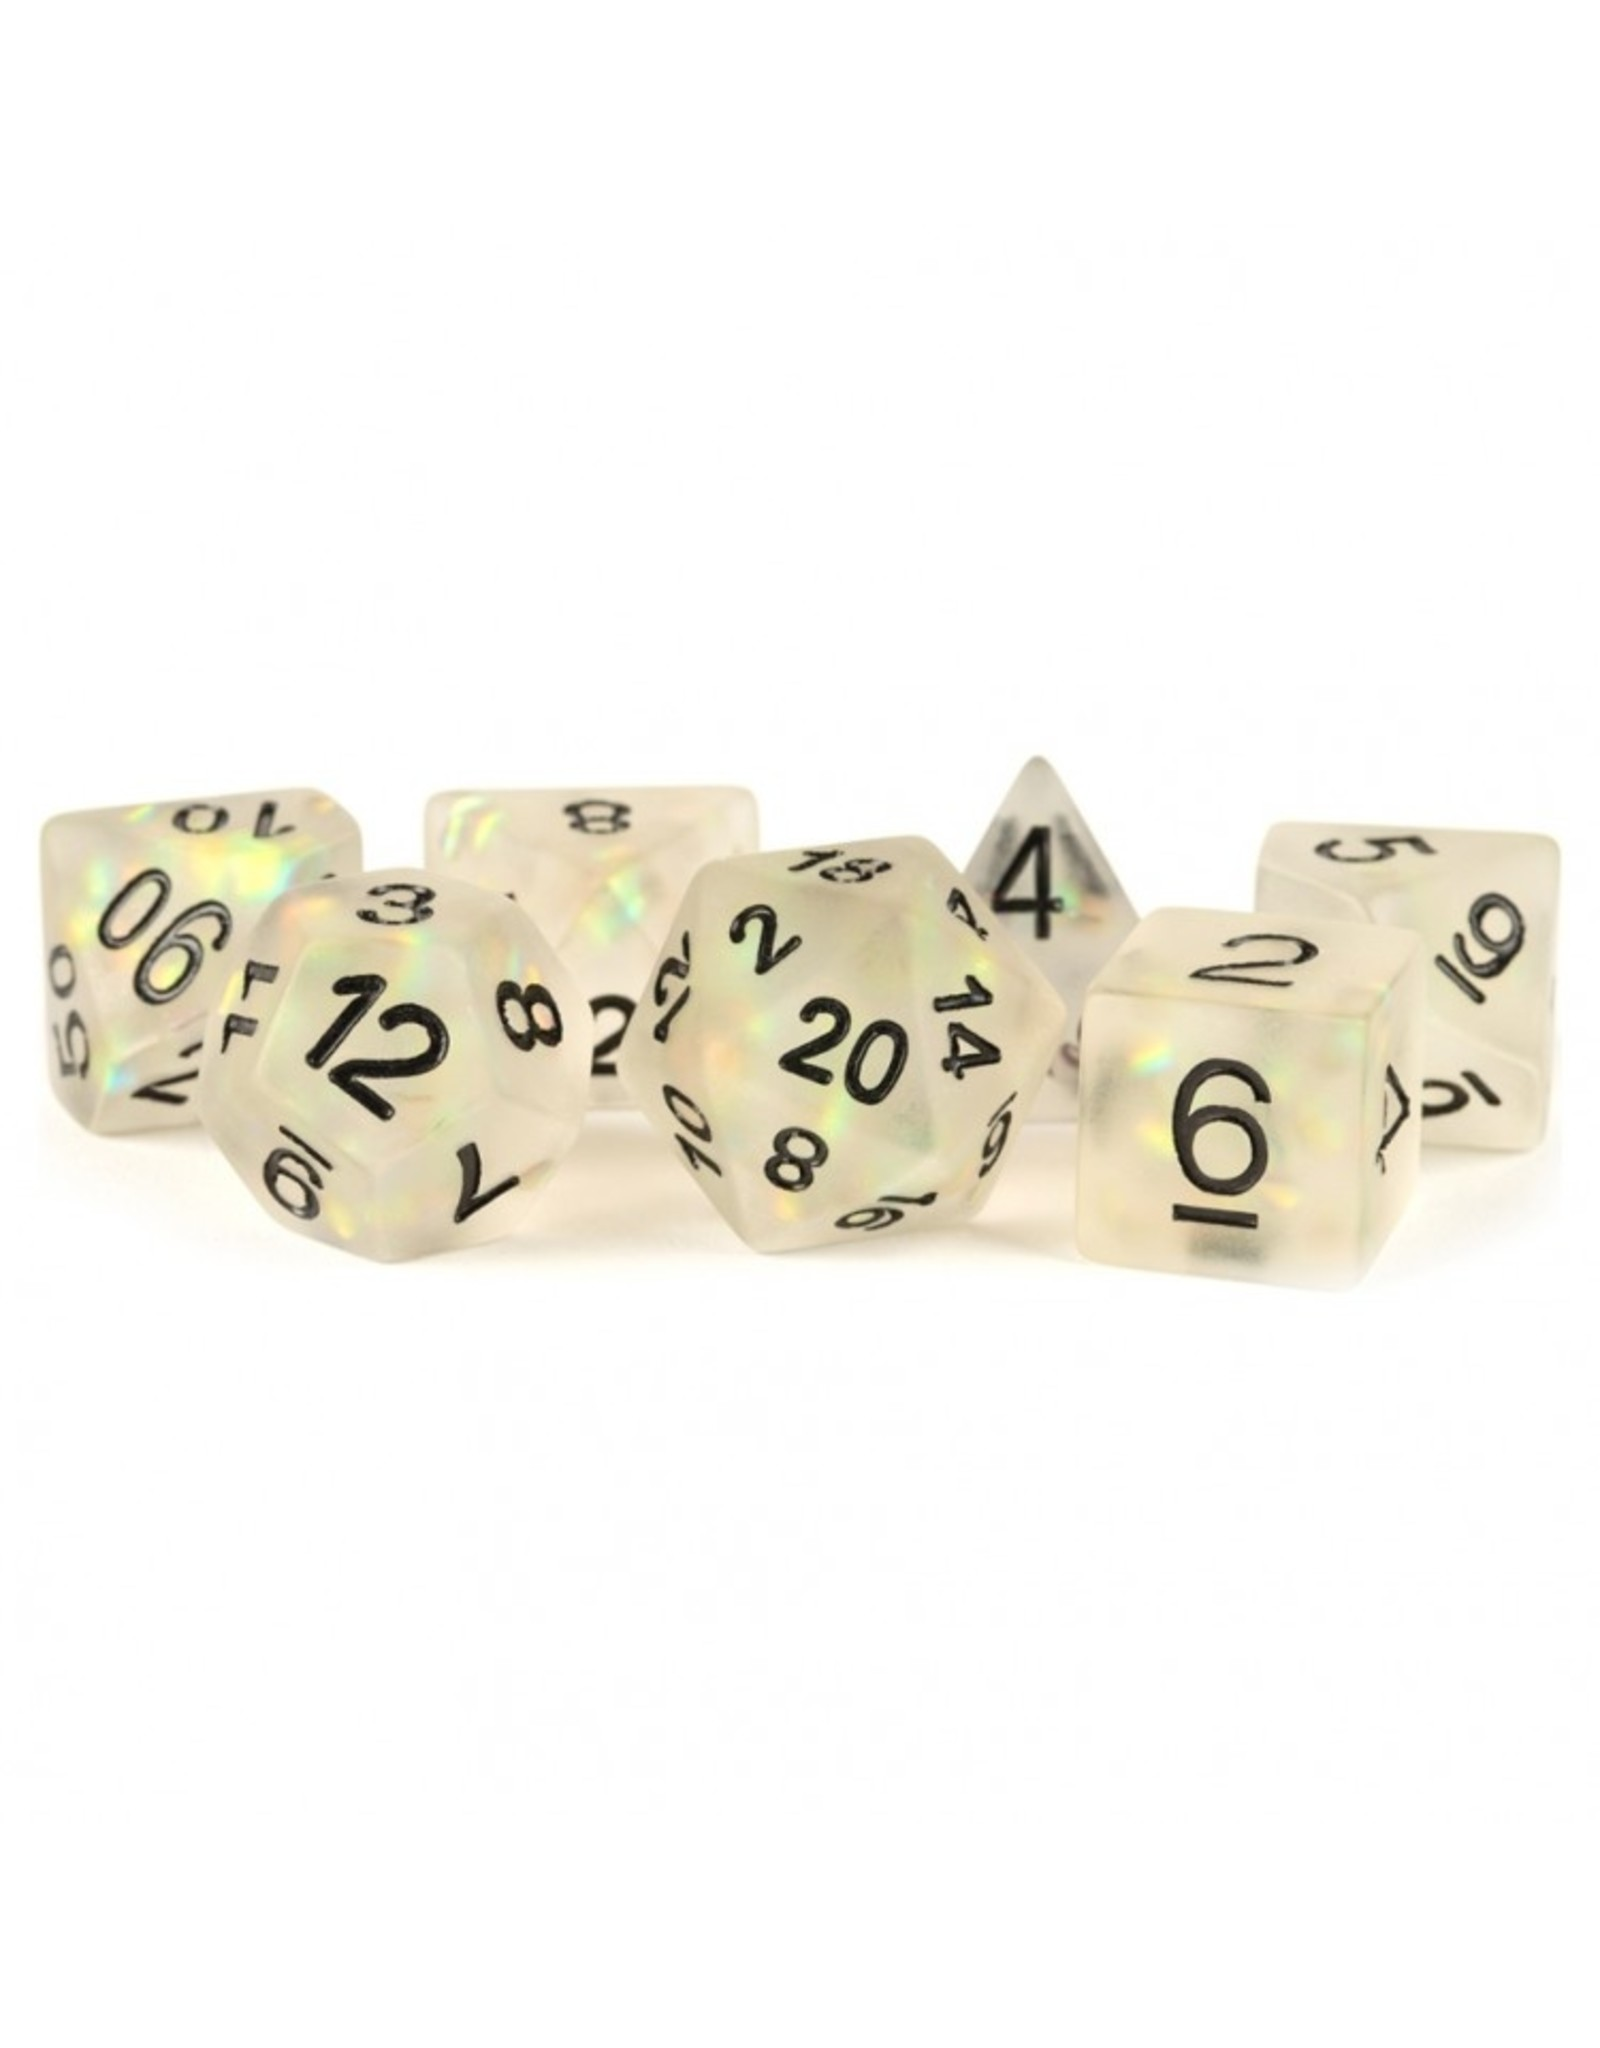 Dice 7-Set: Icy Opal Clear-Black